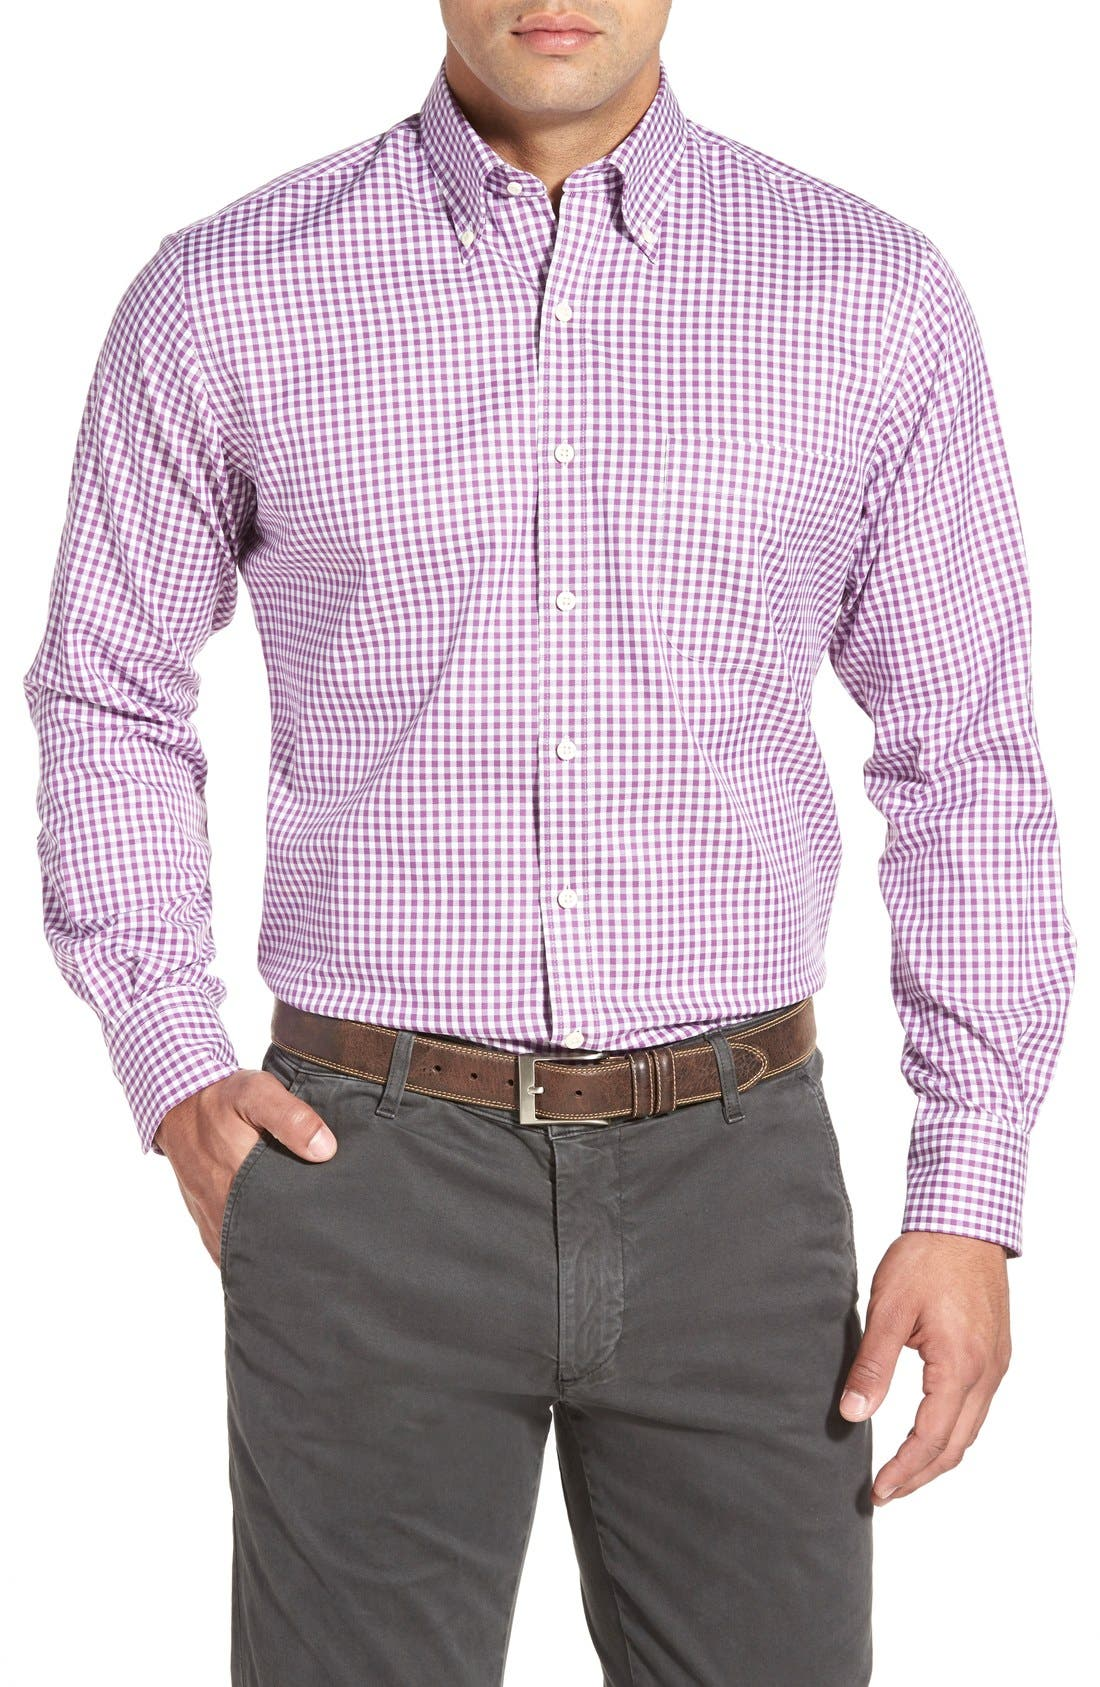 Main Image - Peter Millar 'Nanoluxe' Regular Fit Wrinkle Resistant Twill Check Sport Shirt